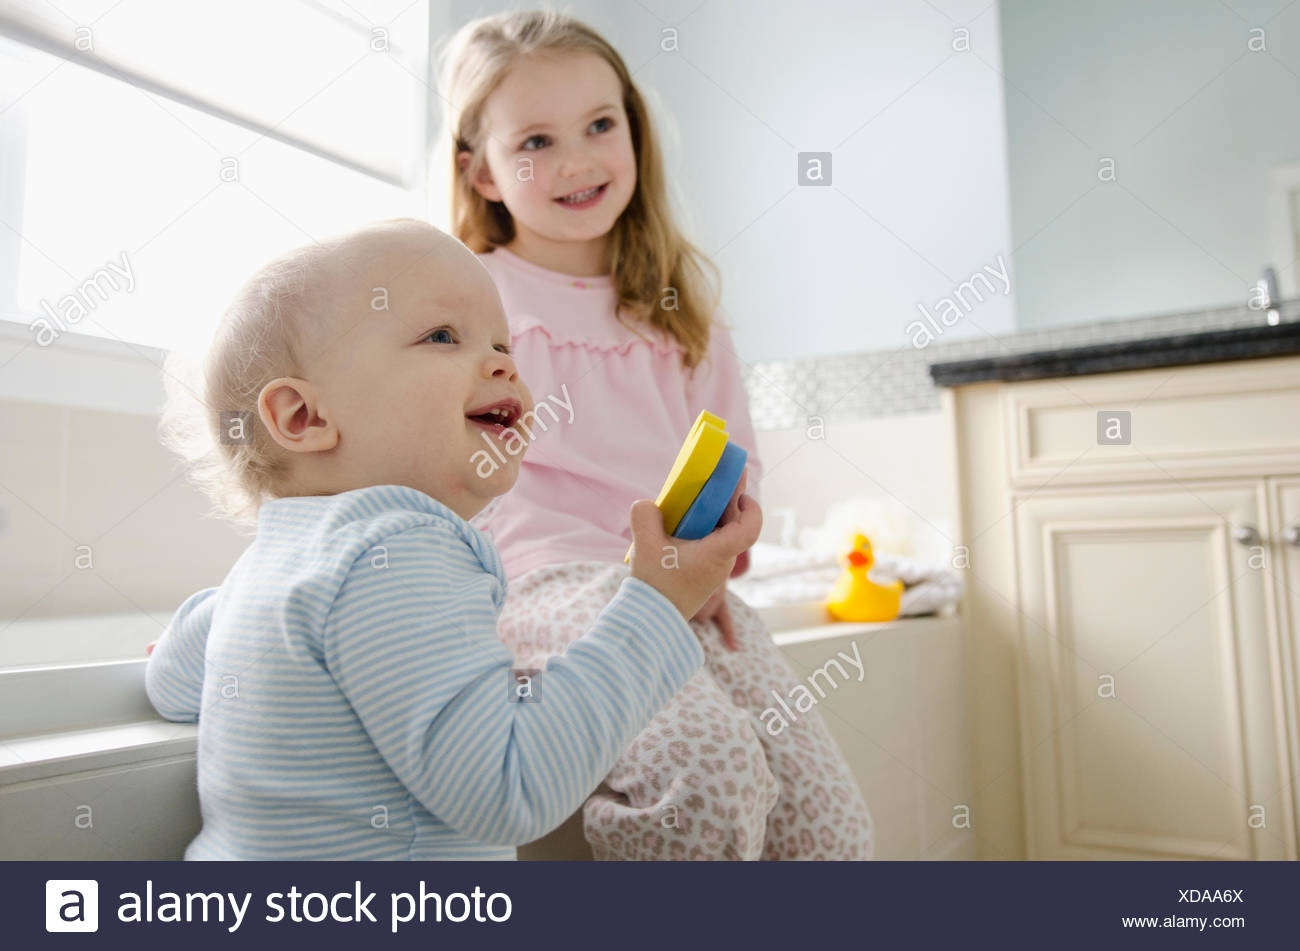 young girl with younger brother in bathroom - Stock Image